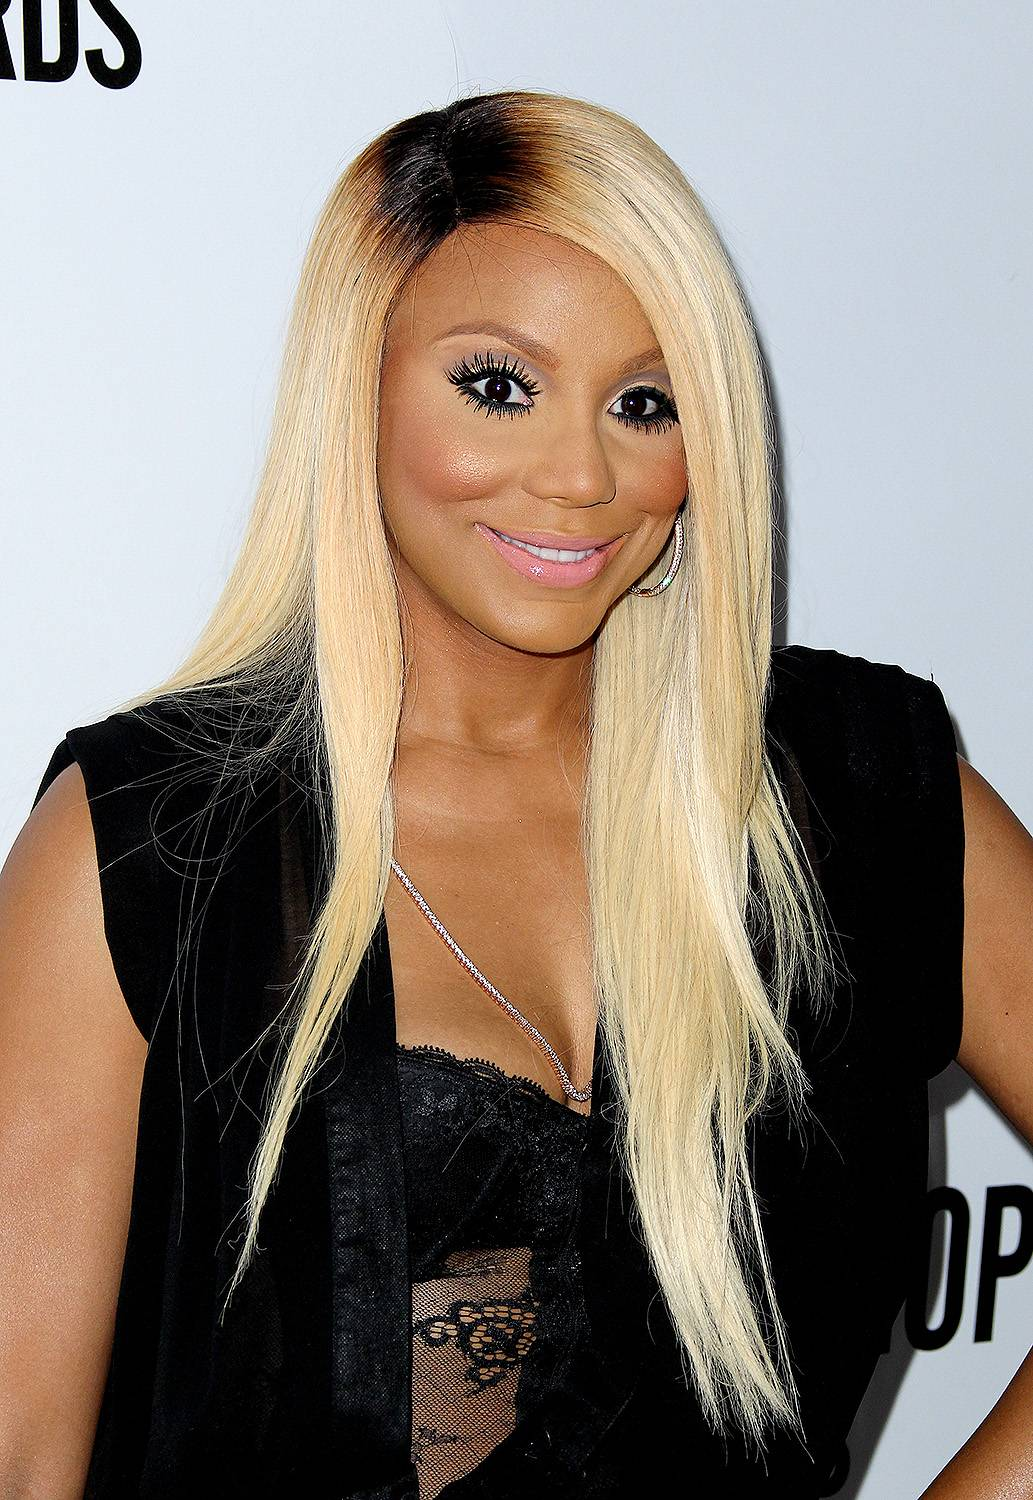 """Tamar 'Real' Braxton - You can't have a show about The Real without having the realest, OK! Despite her success,Tamar admits she loves to pair her designer pieces with """"cheap girl"""" finds and can't wait to share it on the show! If anyone can look like a dime on a dime, it's Tamar. #Dimespeak! Her favorite store? Forever 21.(Photo: FayesVision/WENN.com)"""